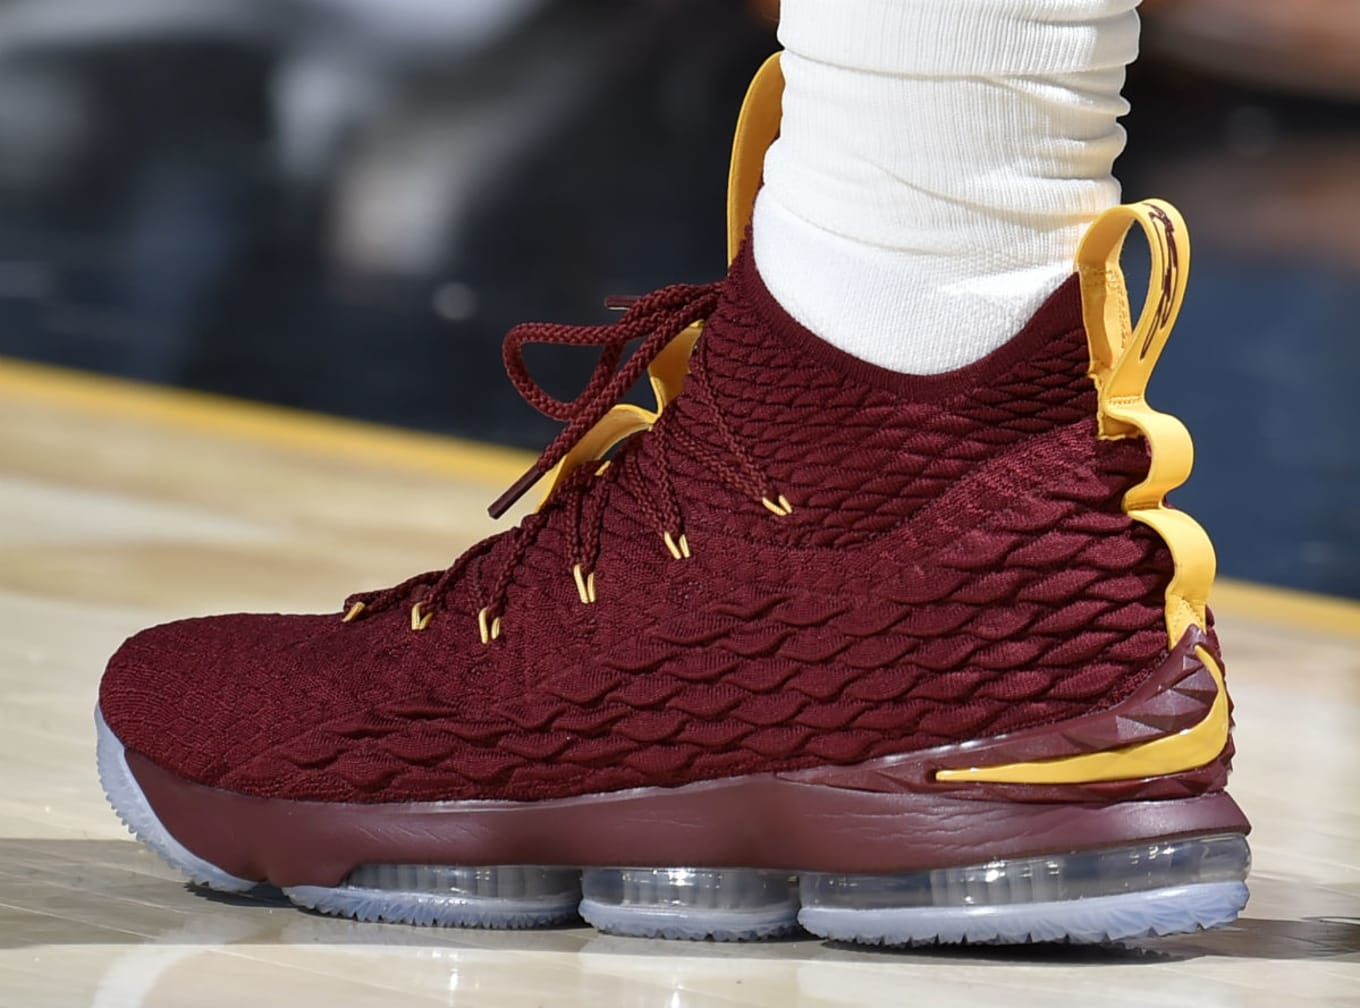 c8f2c47d233  SoleWatch  LeBron James Hosts New York in Nike LeBron 15 PE